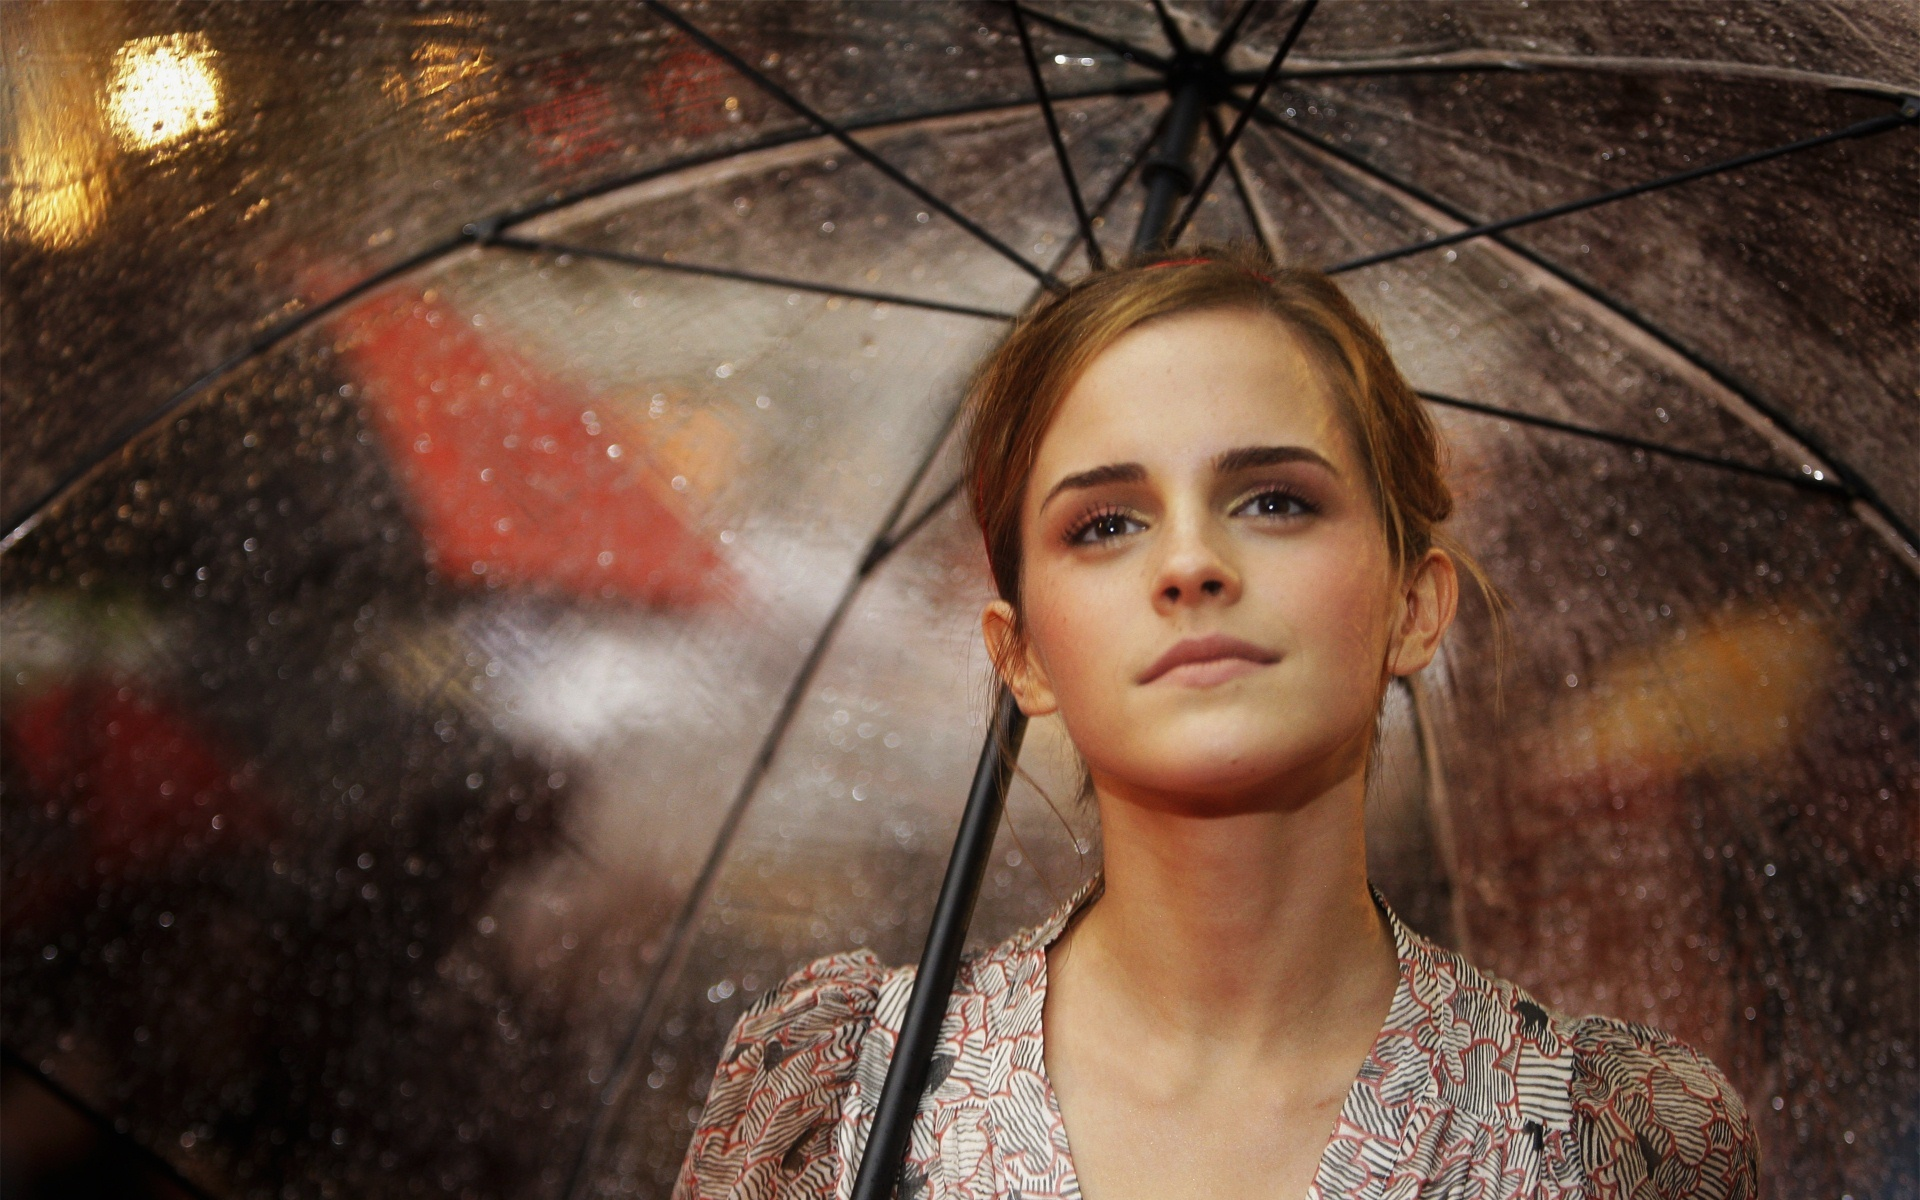 Emma watson hd wallpapers for desktop download - Emma watson wallpaper free download ...